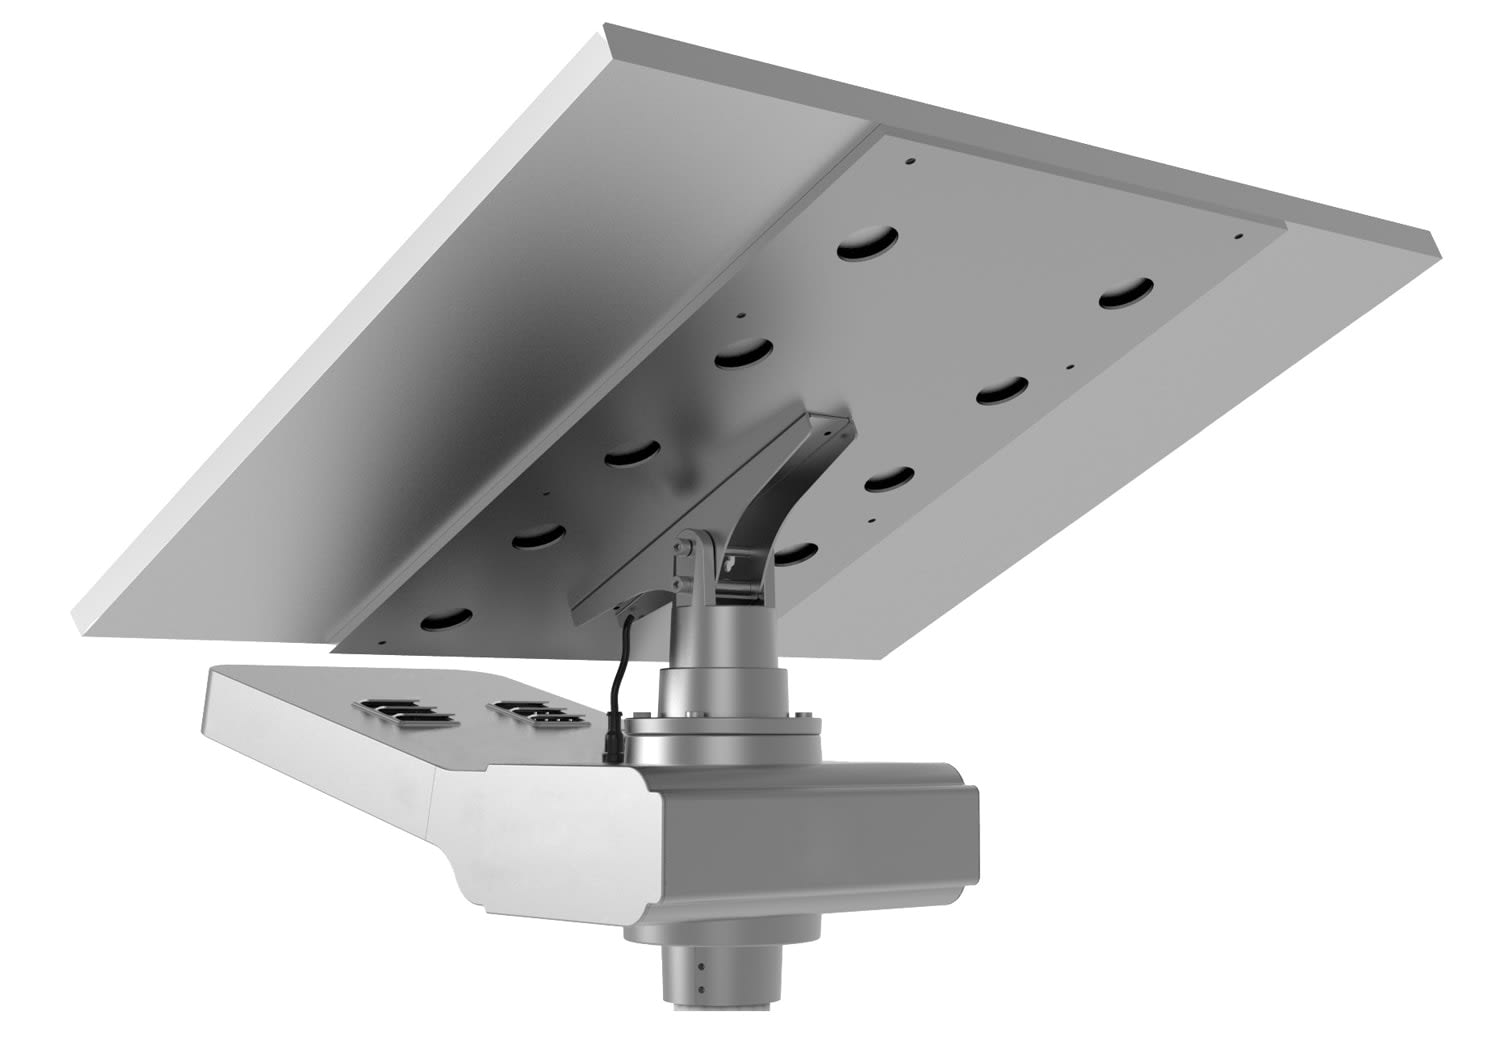 Solar-Power Solar Luminaire with Adjustable Panel